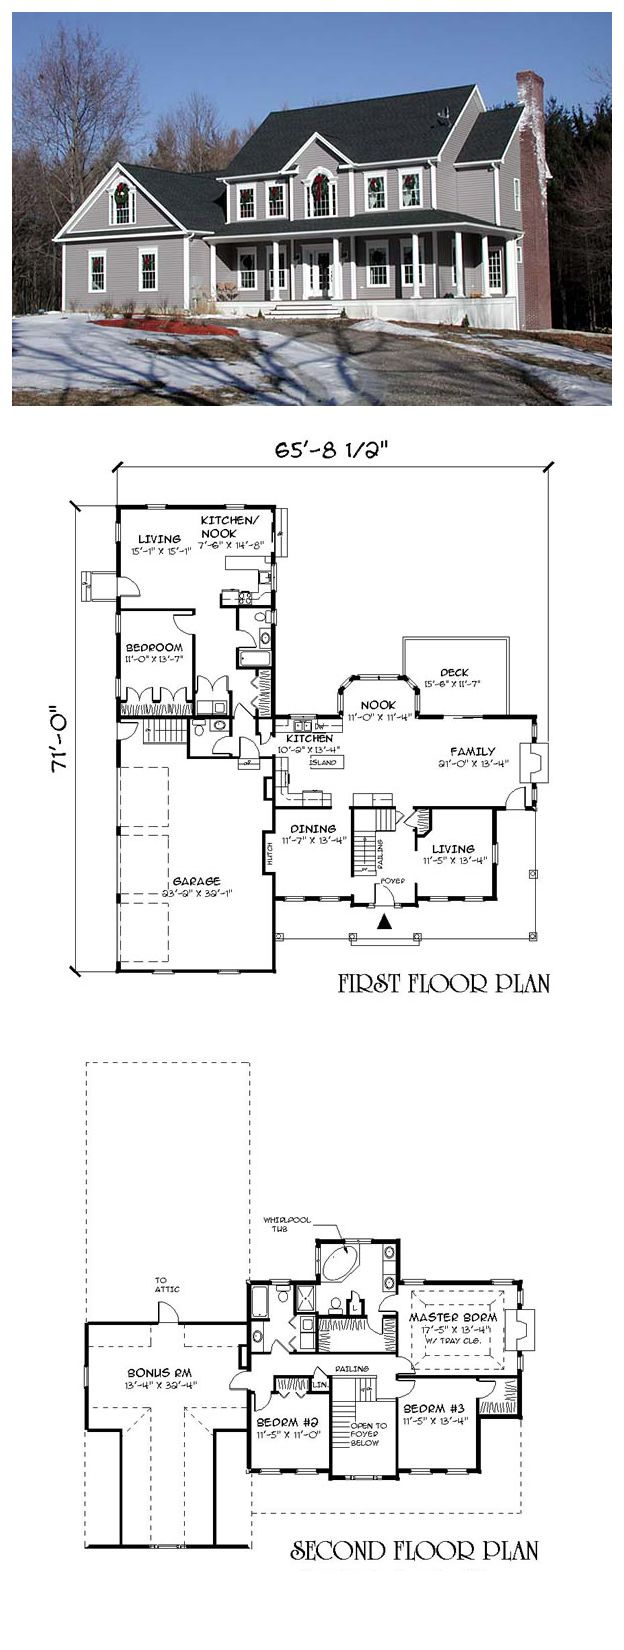 COOL house plans offers a unique variety